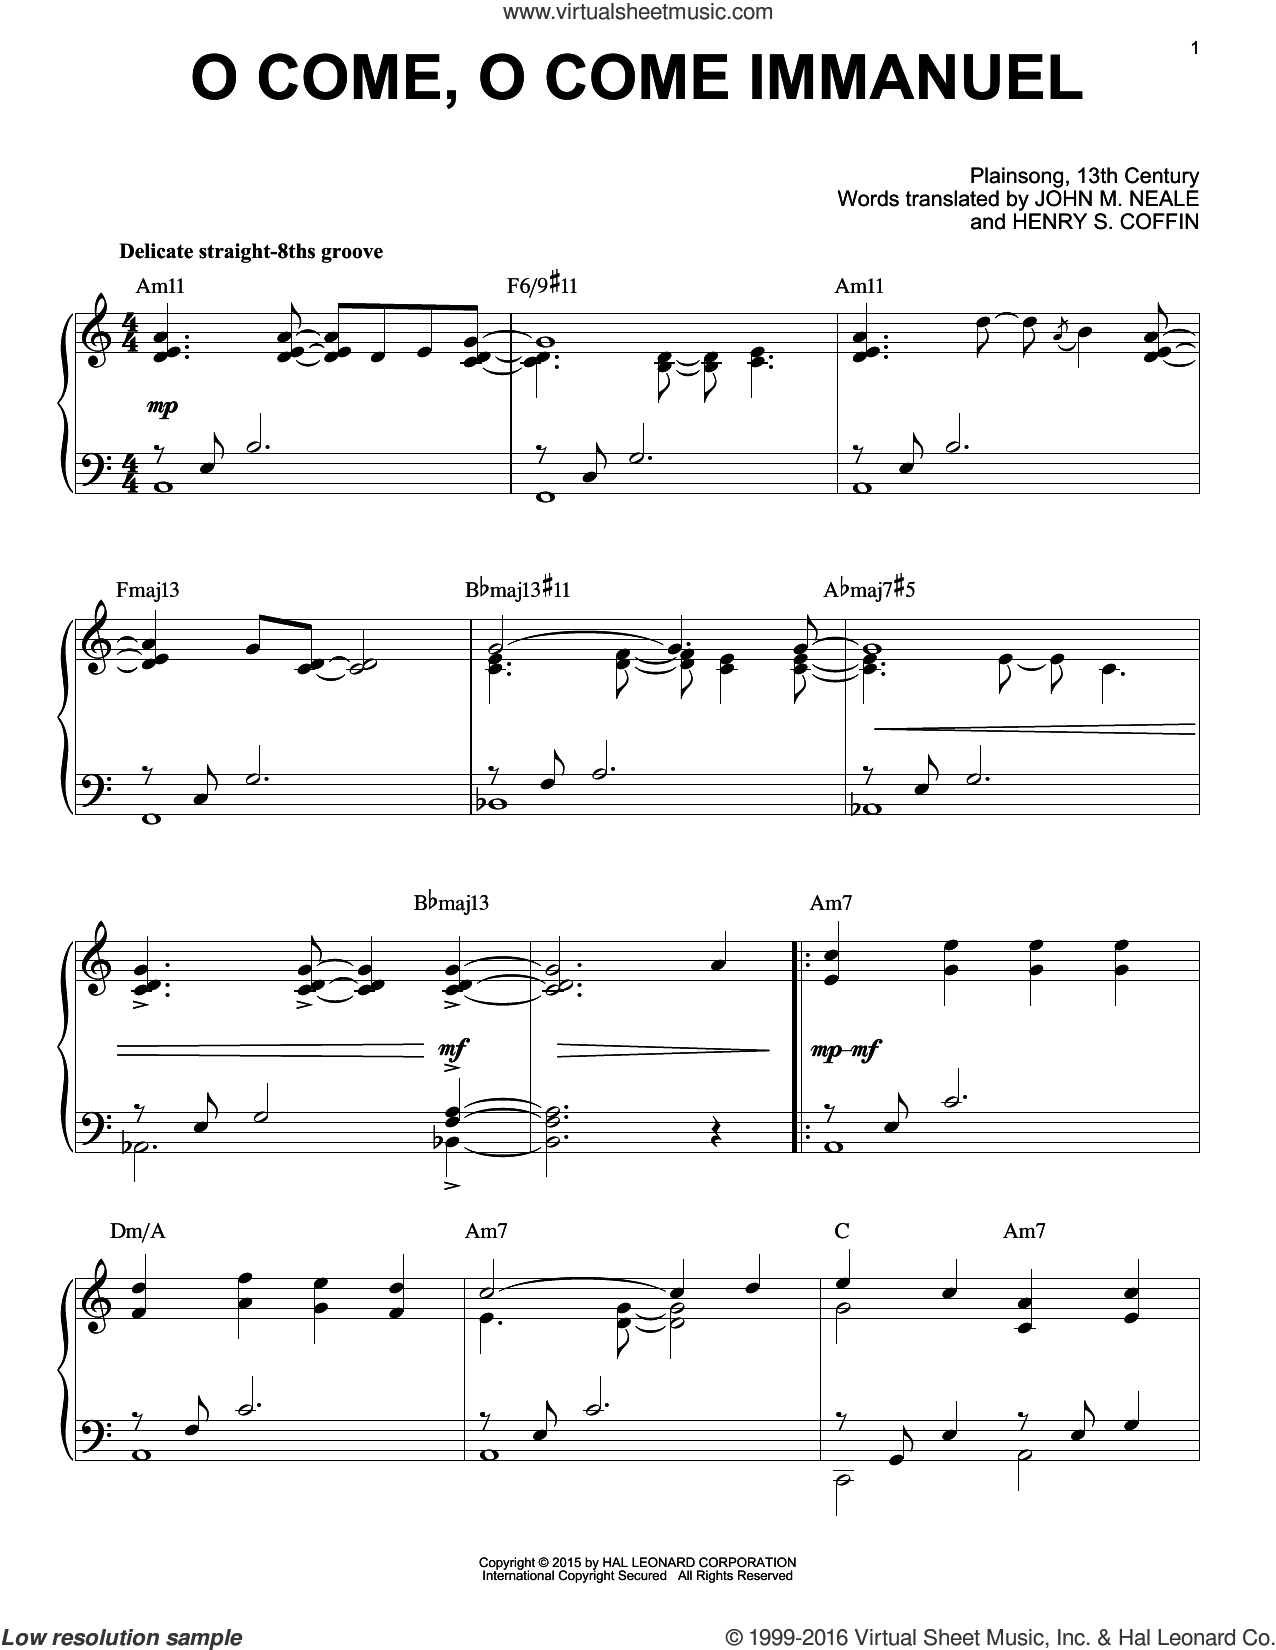 O Come, O Come Immanuel sheet music for piano solo by John M. Neale (v. 1,2) and Henry S. Coffin (trans.), intermediate skill level